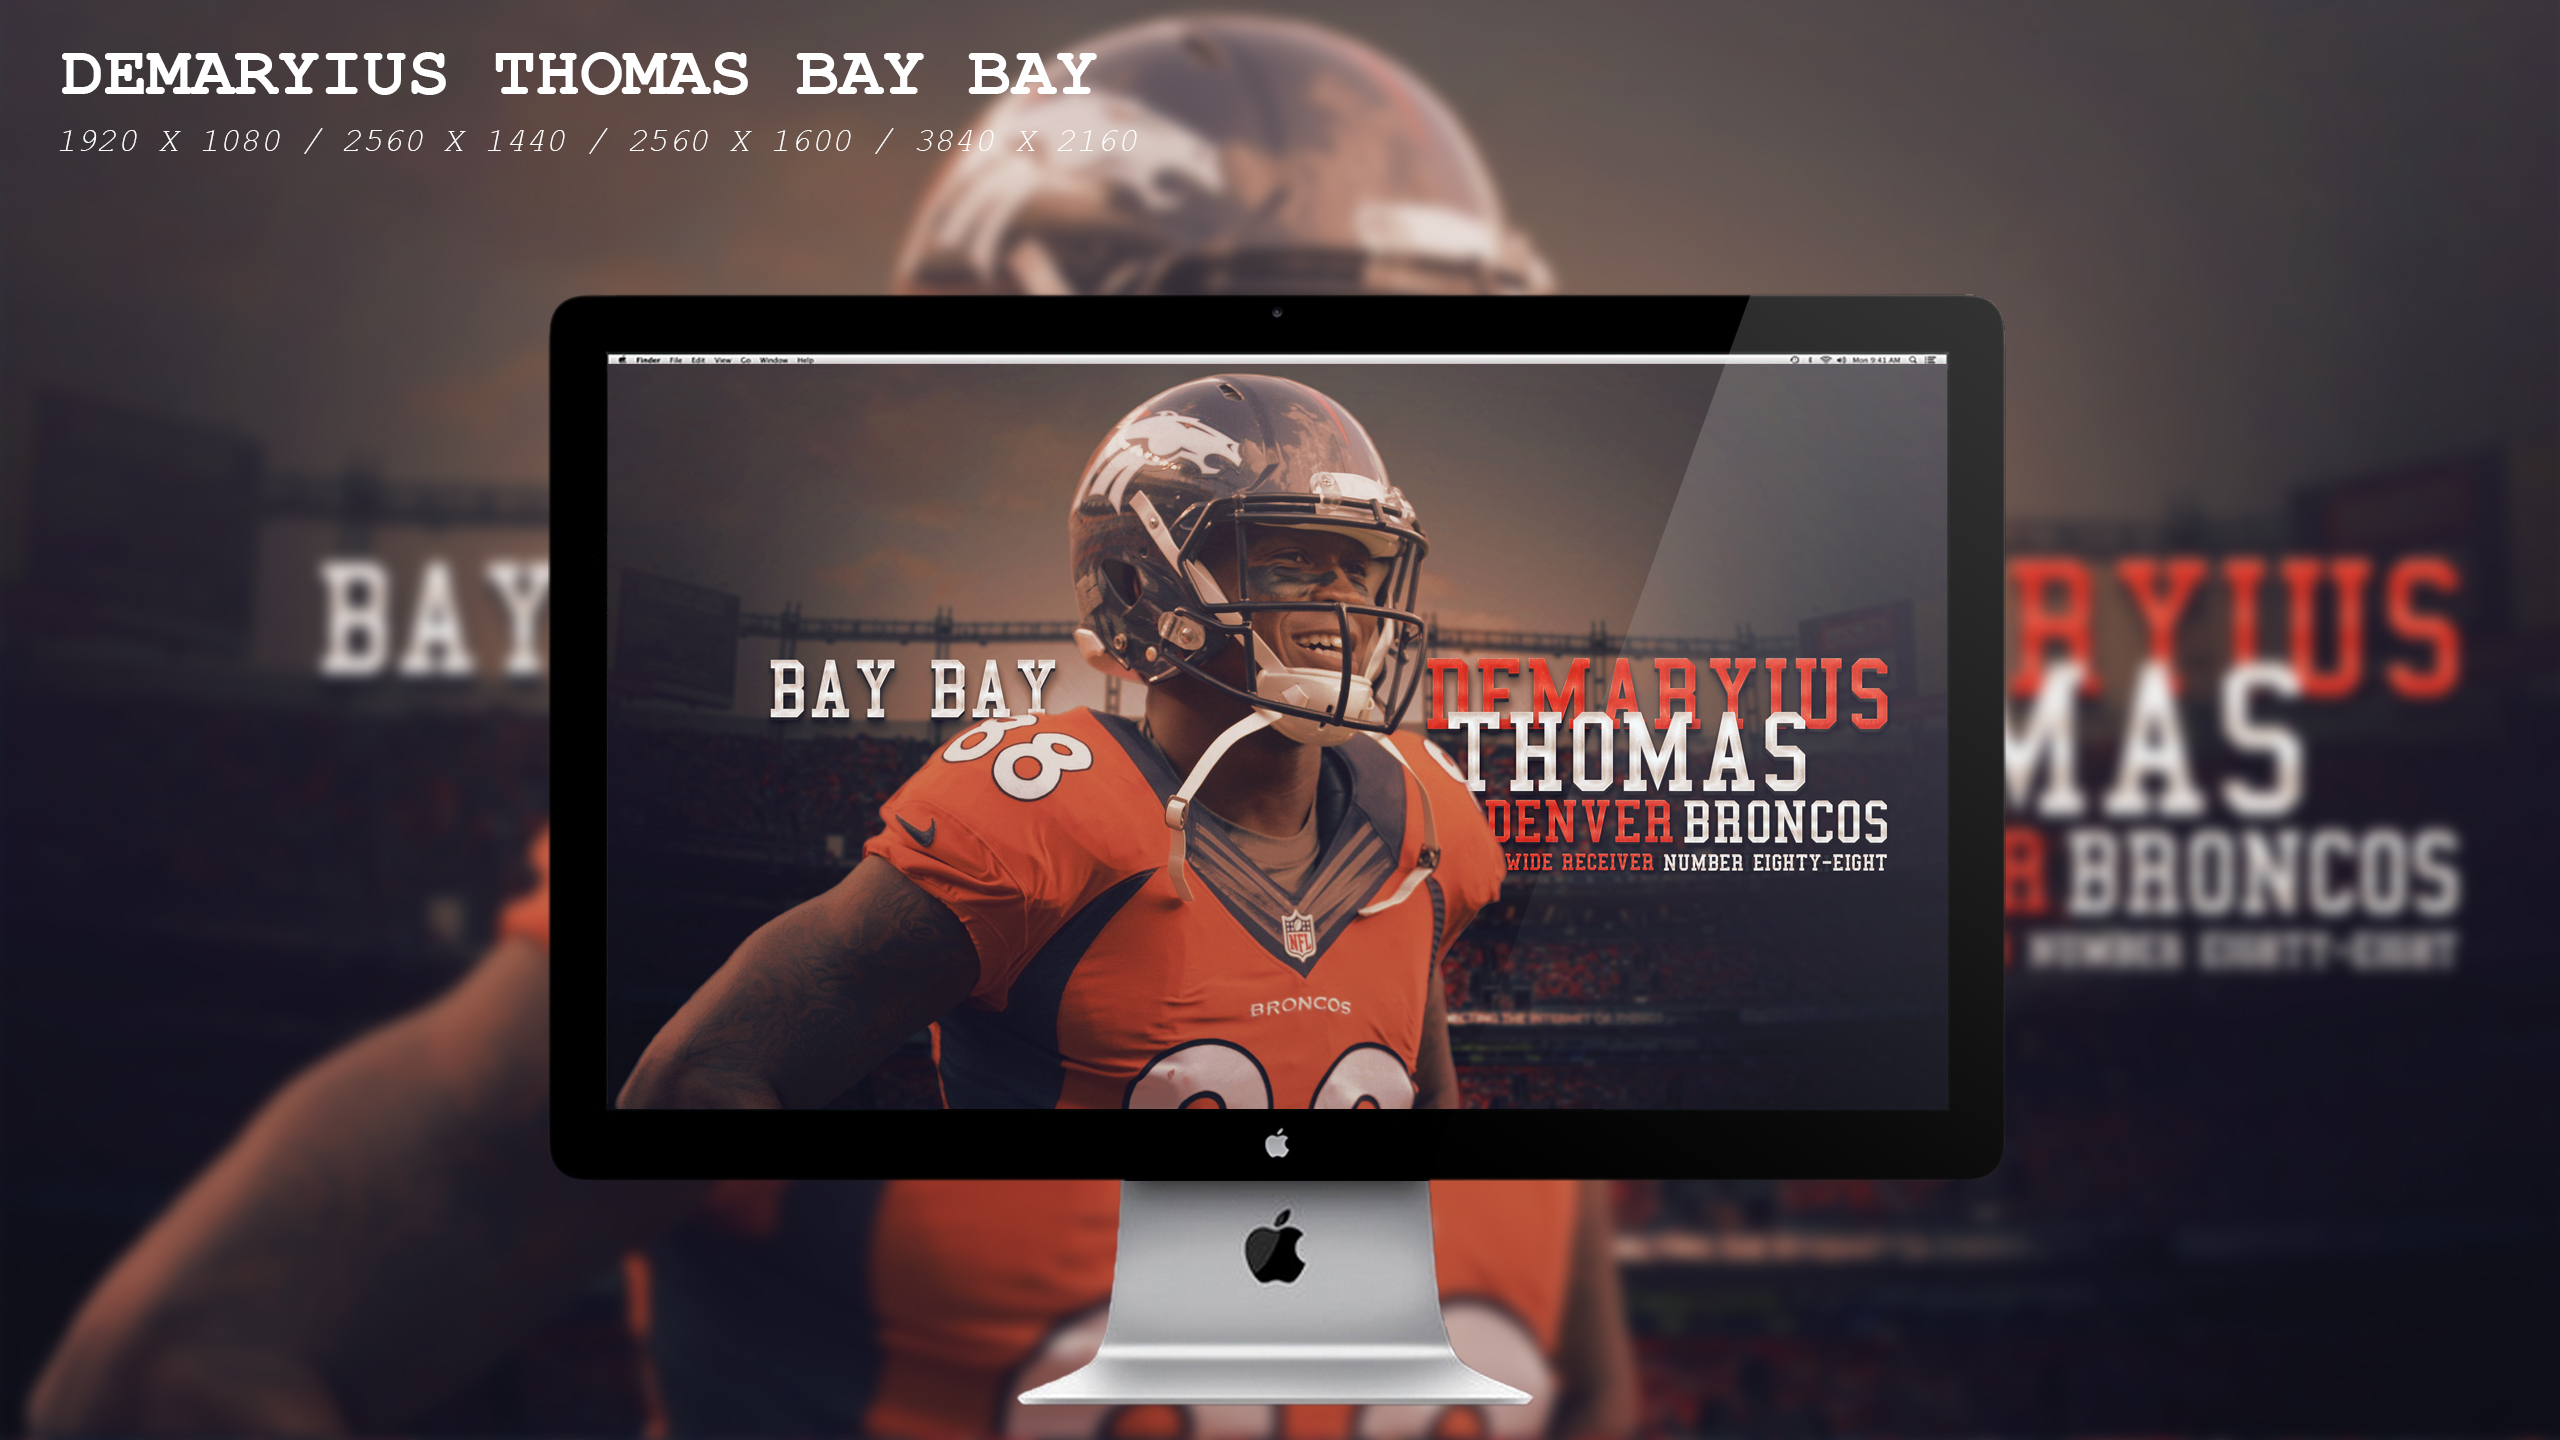 Demaryius Thomas Bay Bay Wallpaper HD by BeAware8 on ...Demaryius Thomas Wallpaper